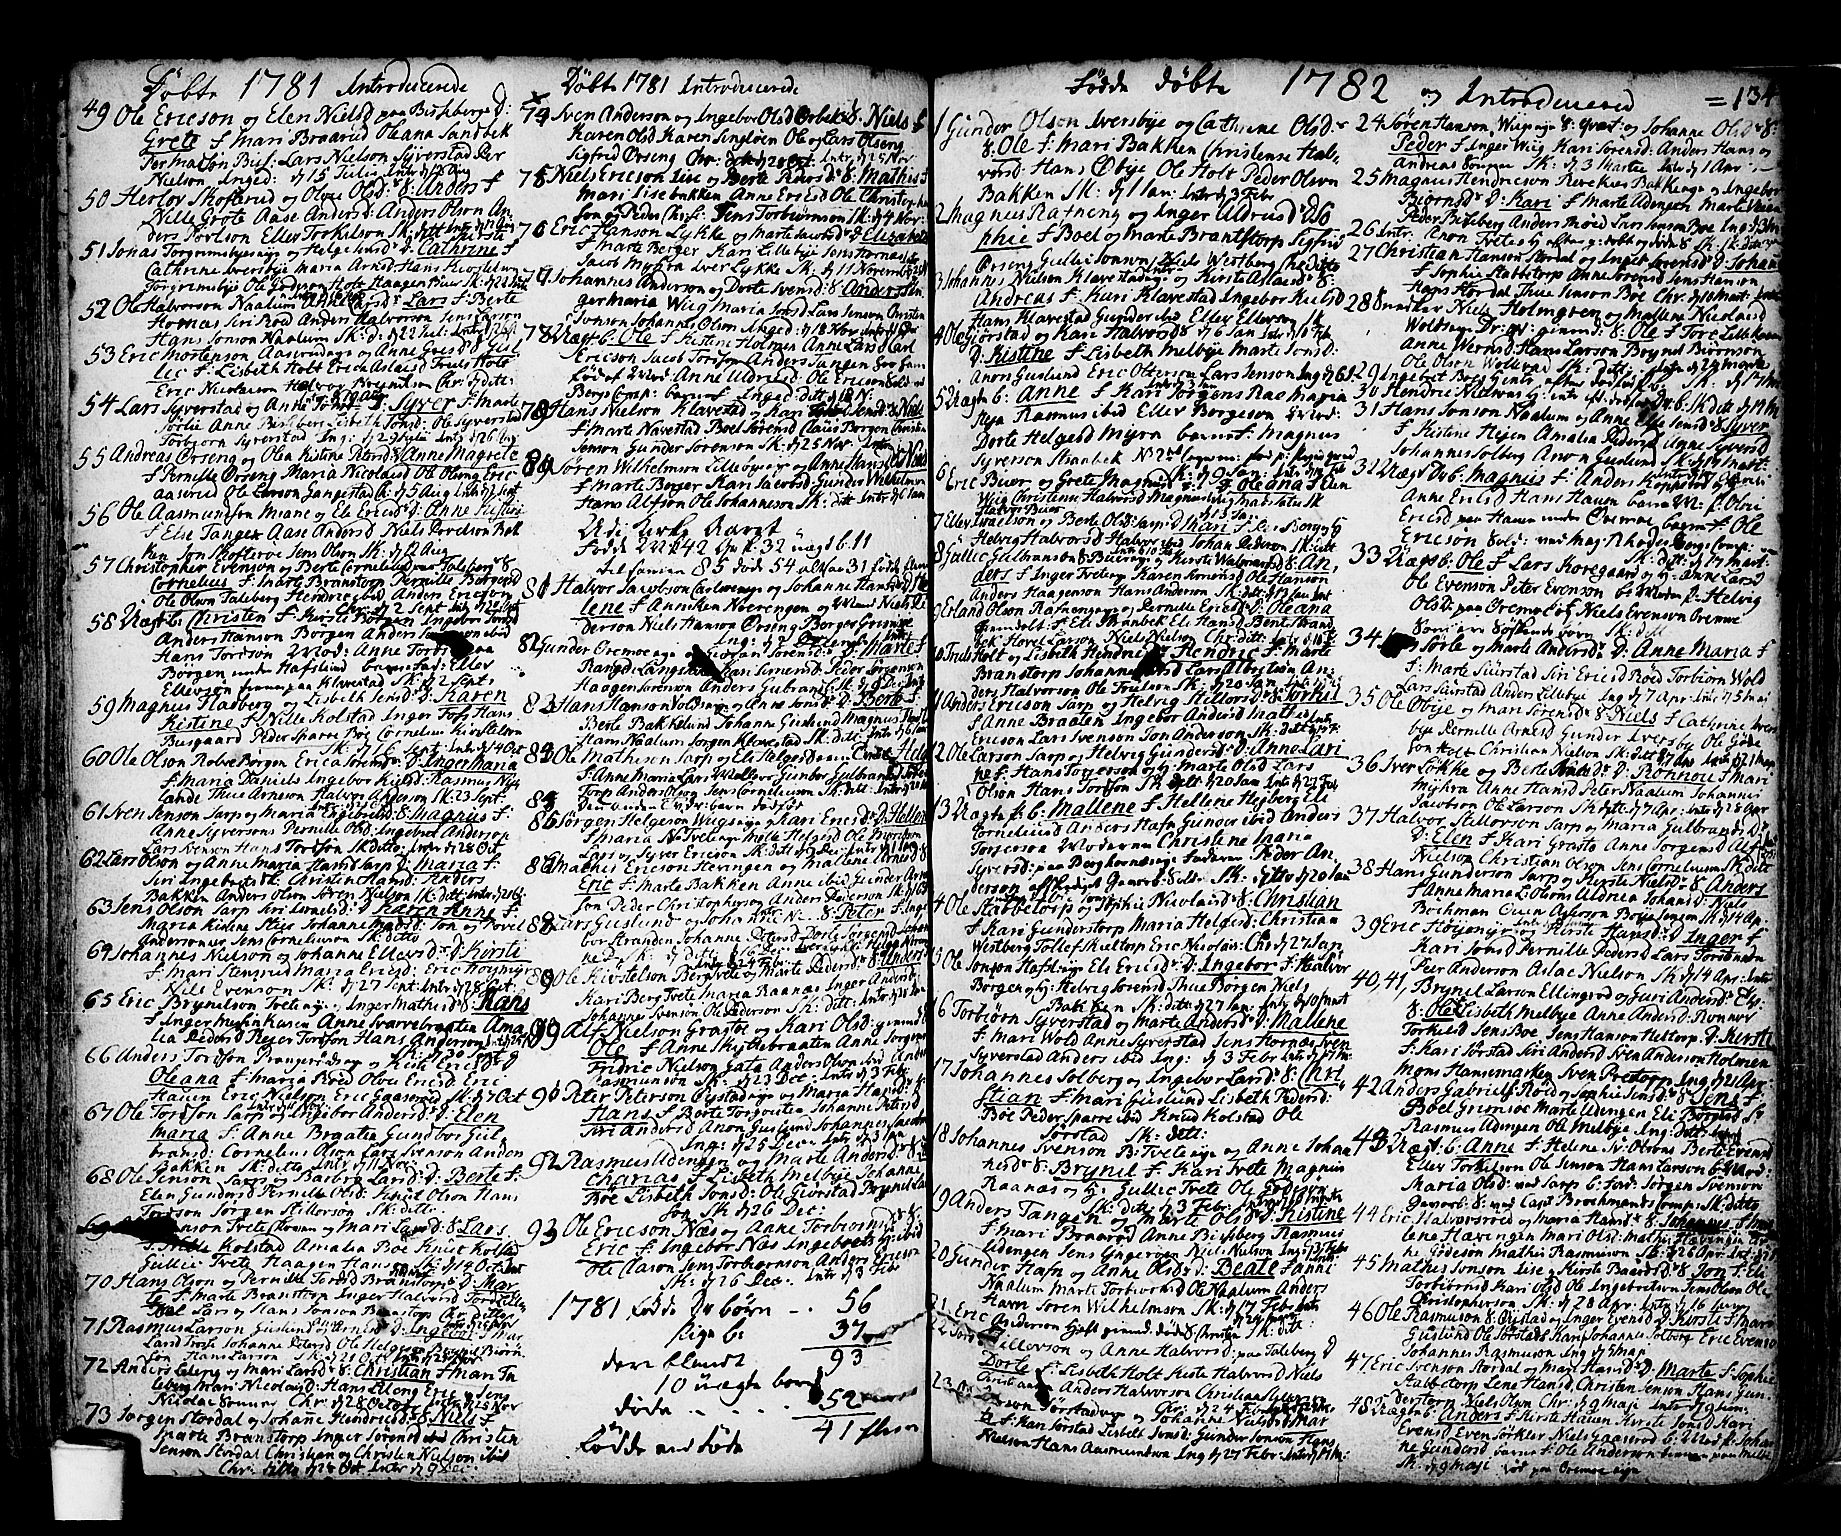 SAO, Skjeberg prestekontor Kirkebøker, F/Fa/L0002: Parish register (official) no. I 2, 1726-1791, p. 134